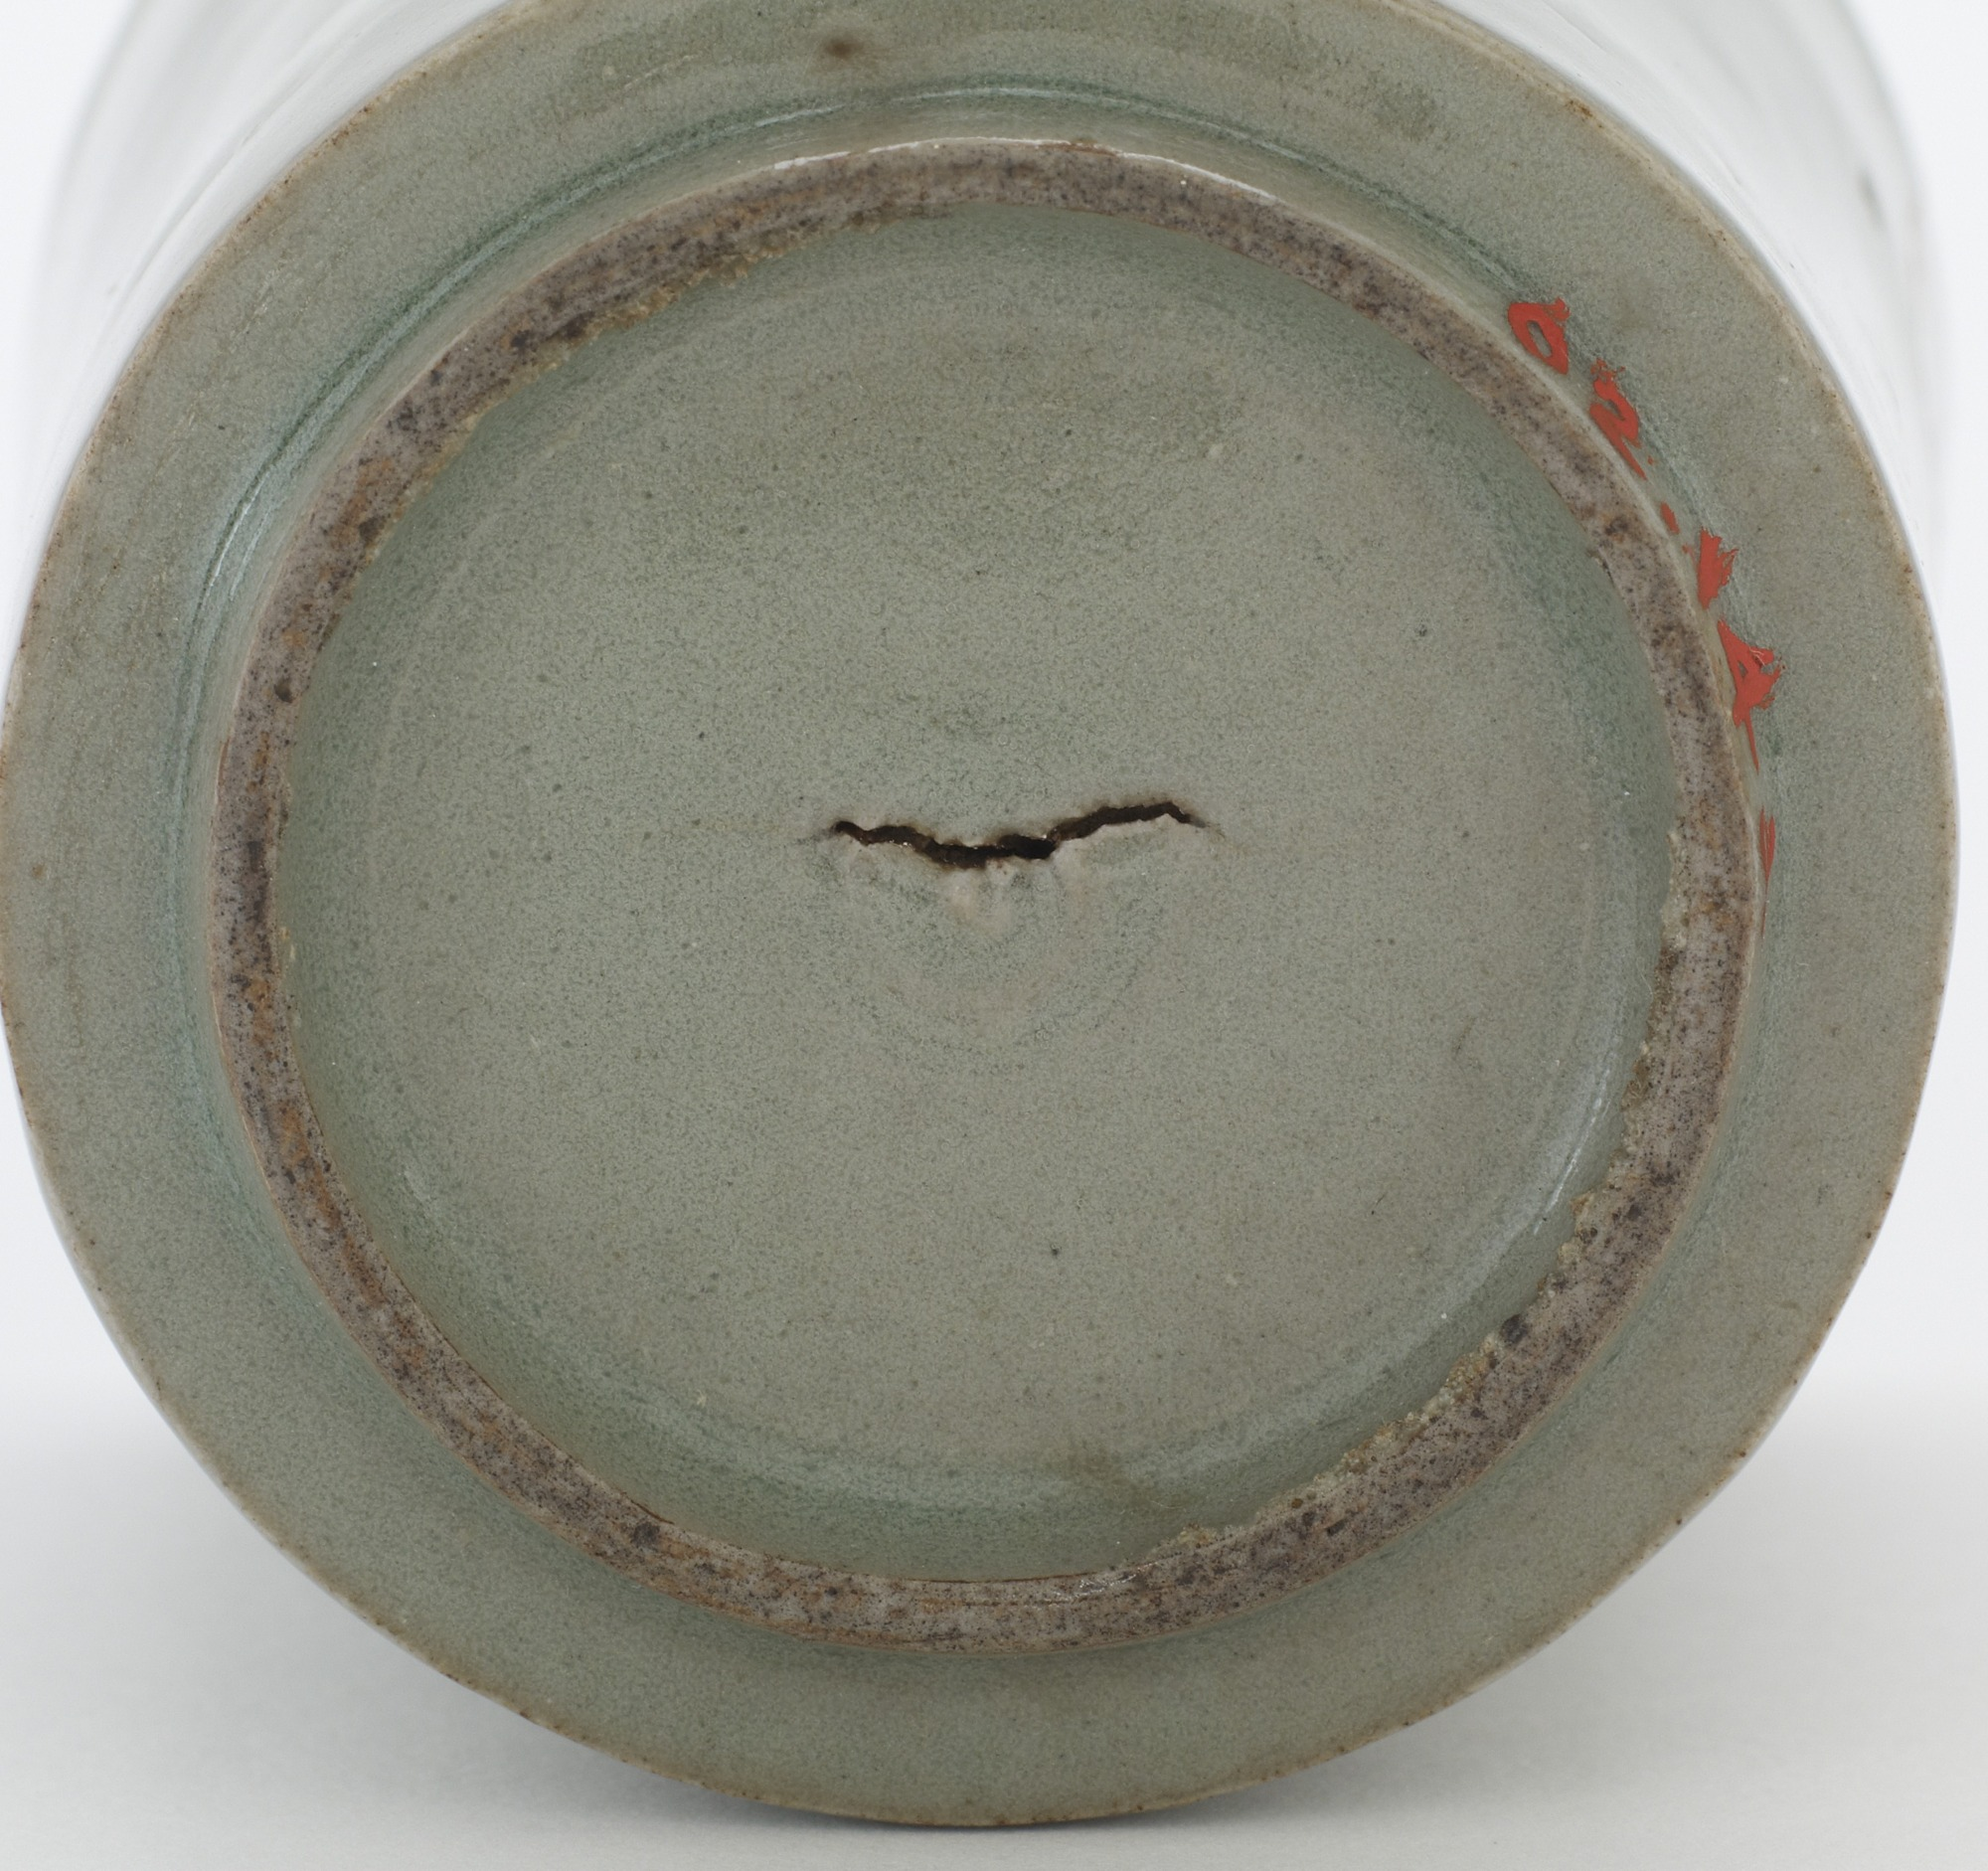 Tea cup or individual serving cup in style of Goryeo celadon, fitted with lid for use as tea caddy